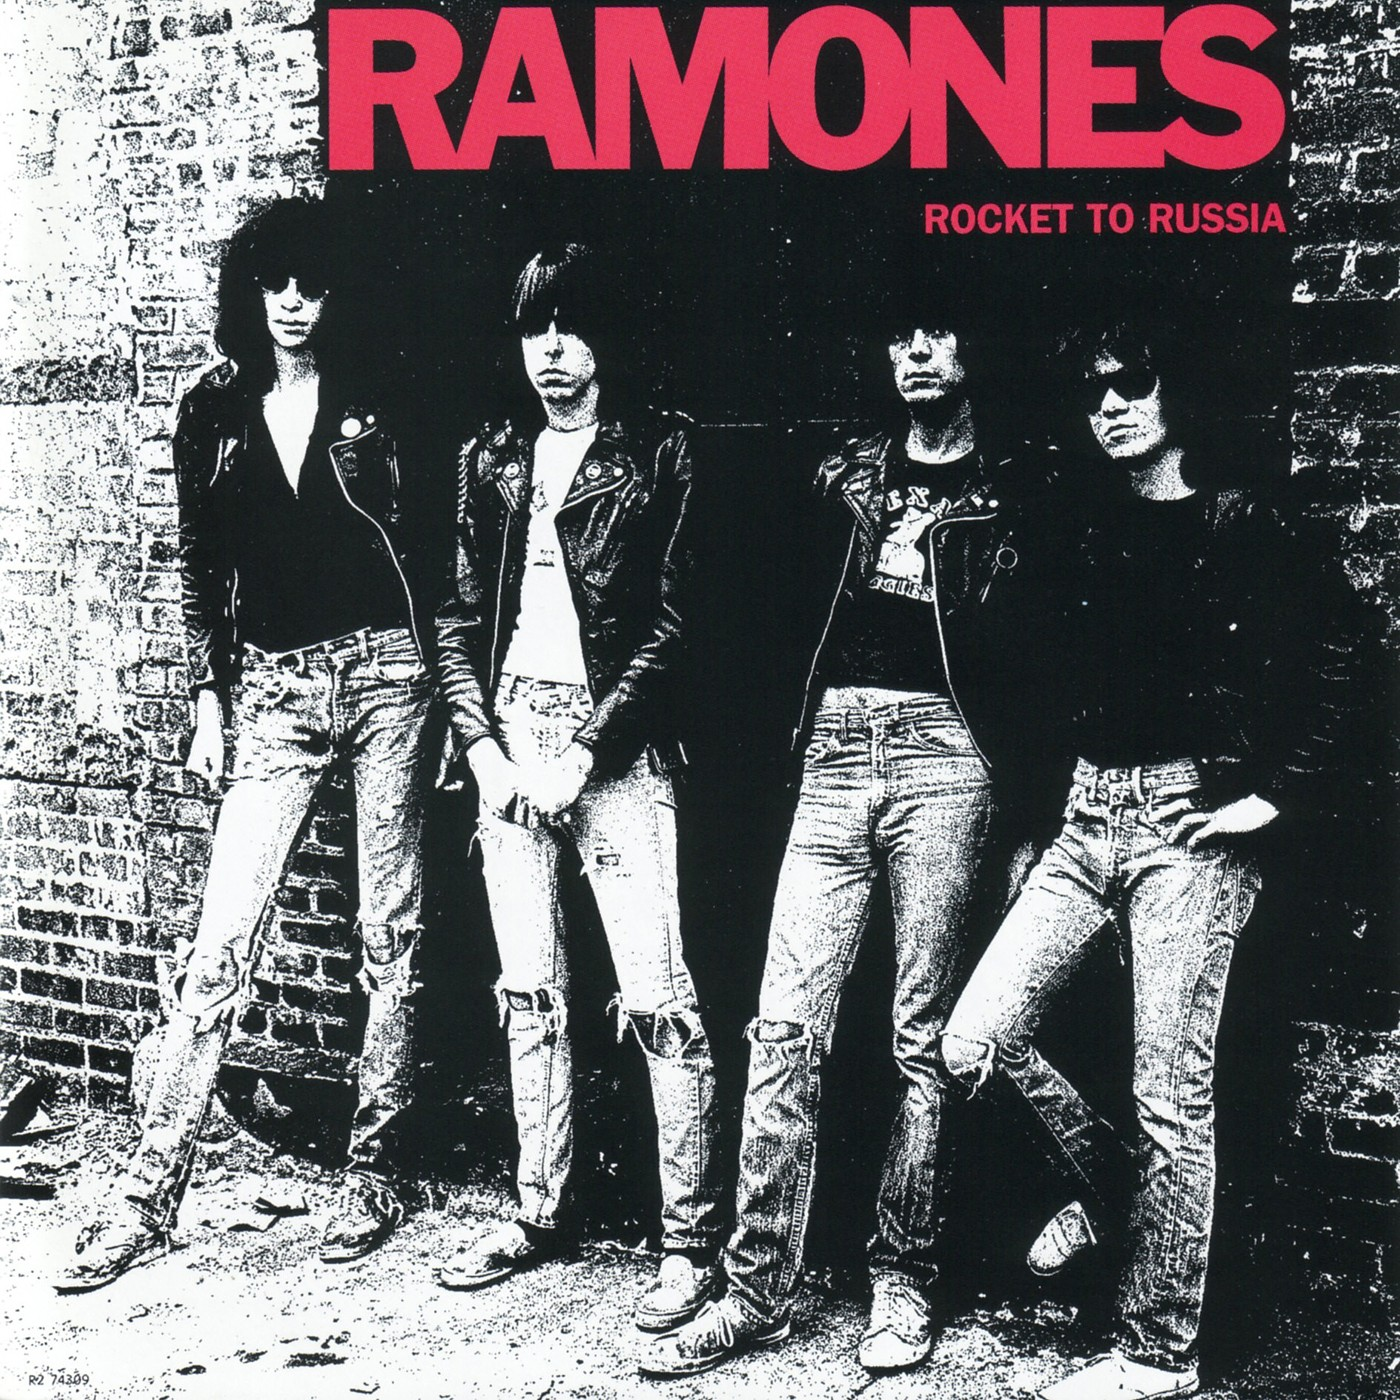 Rock Music Cover Rocket To Russia The Punk Rock Art Of The Ramones Green And